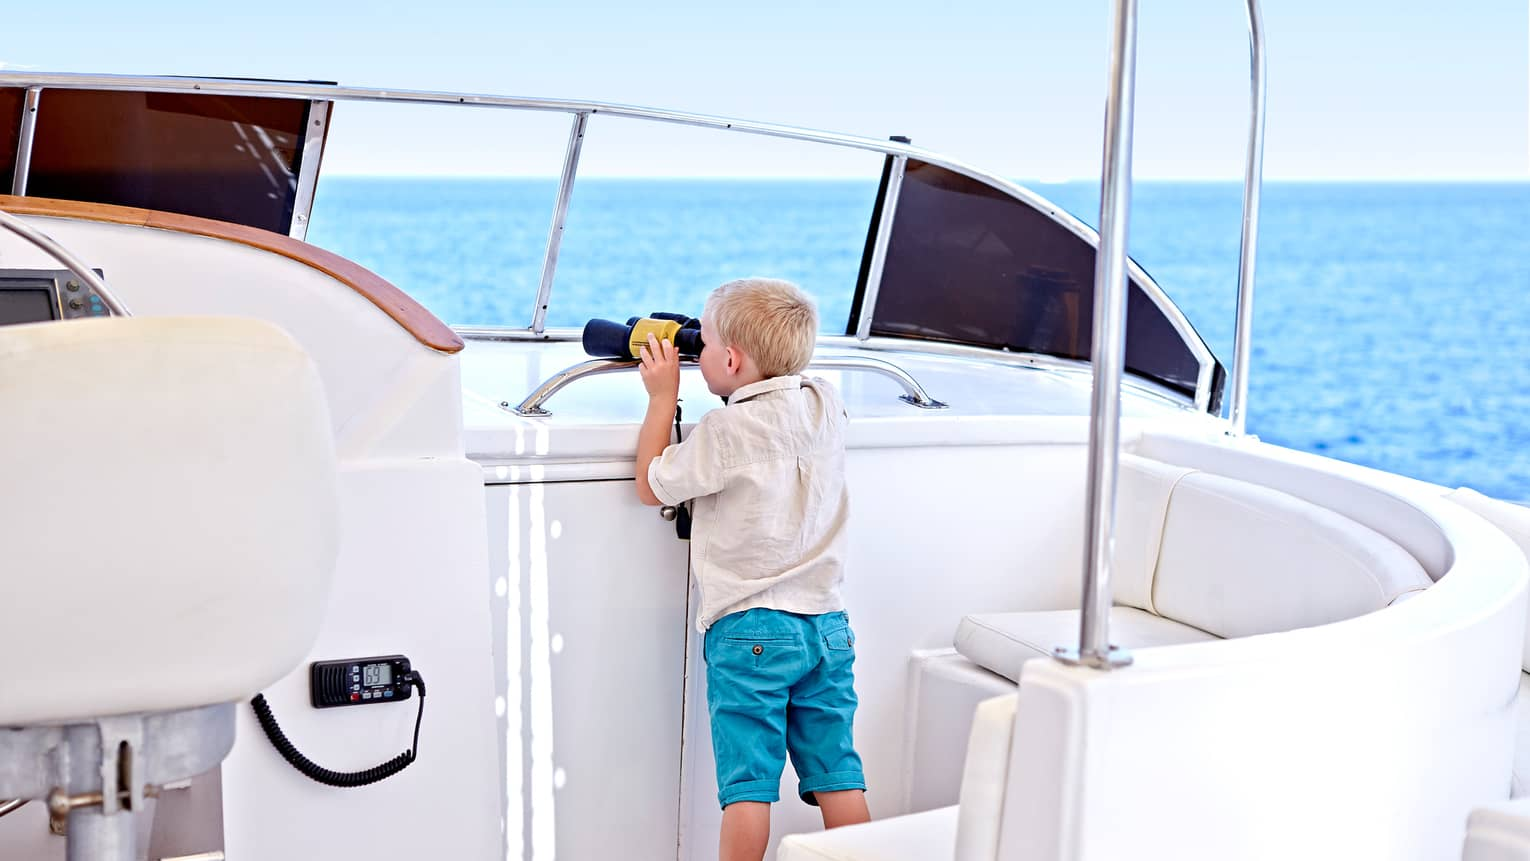 Young boy looks through binoculars on deck of white yacht